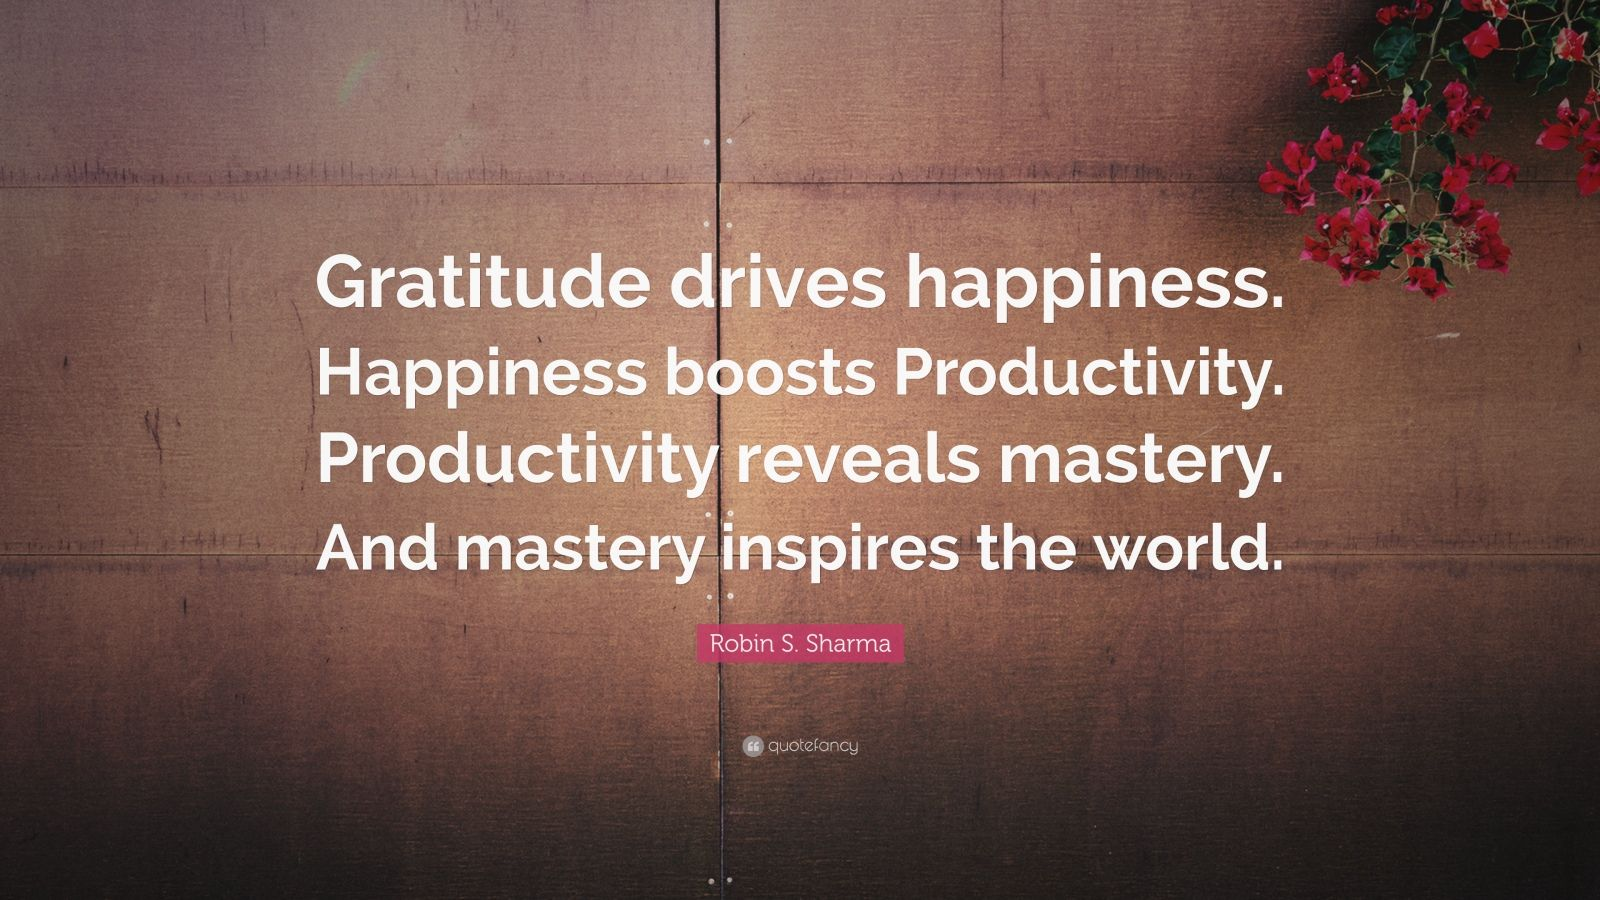 """Robin S. Sharma Quote: """"Gratitude drives happiness. Happiness boosts Productivity. Productivity reveals mastery. And mastery inspires the world."""""""